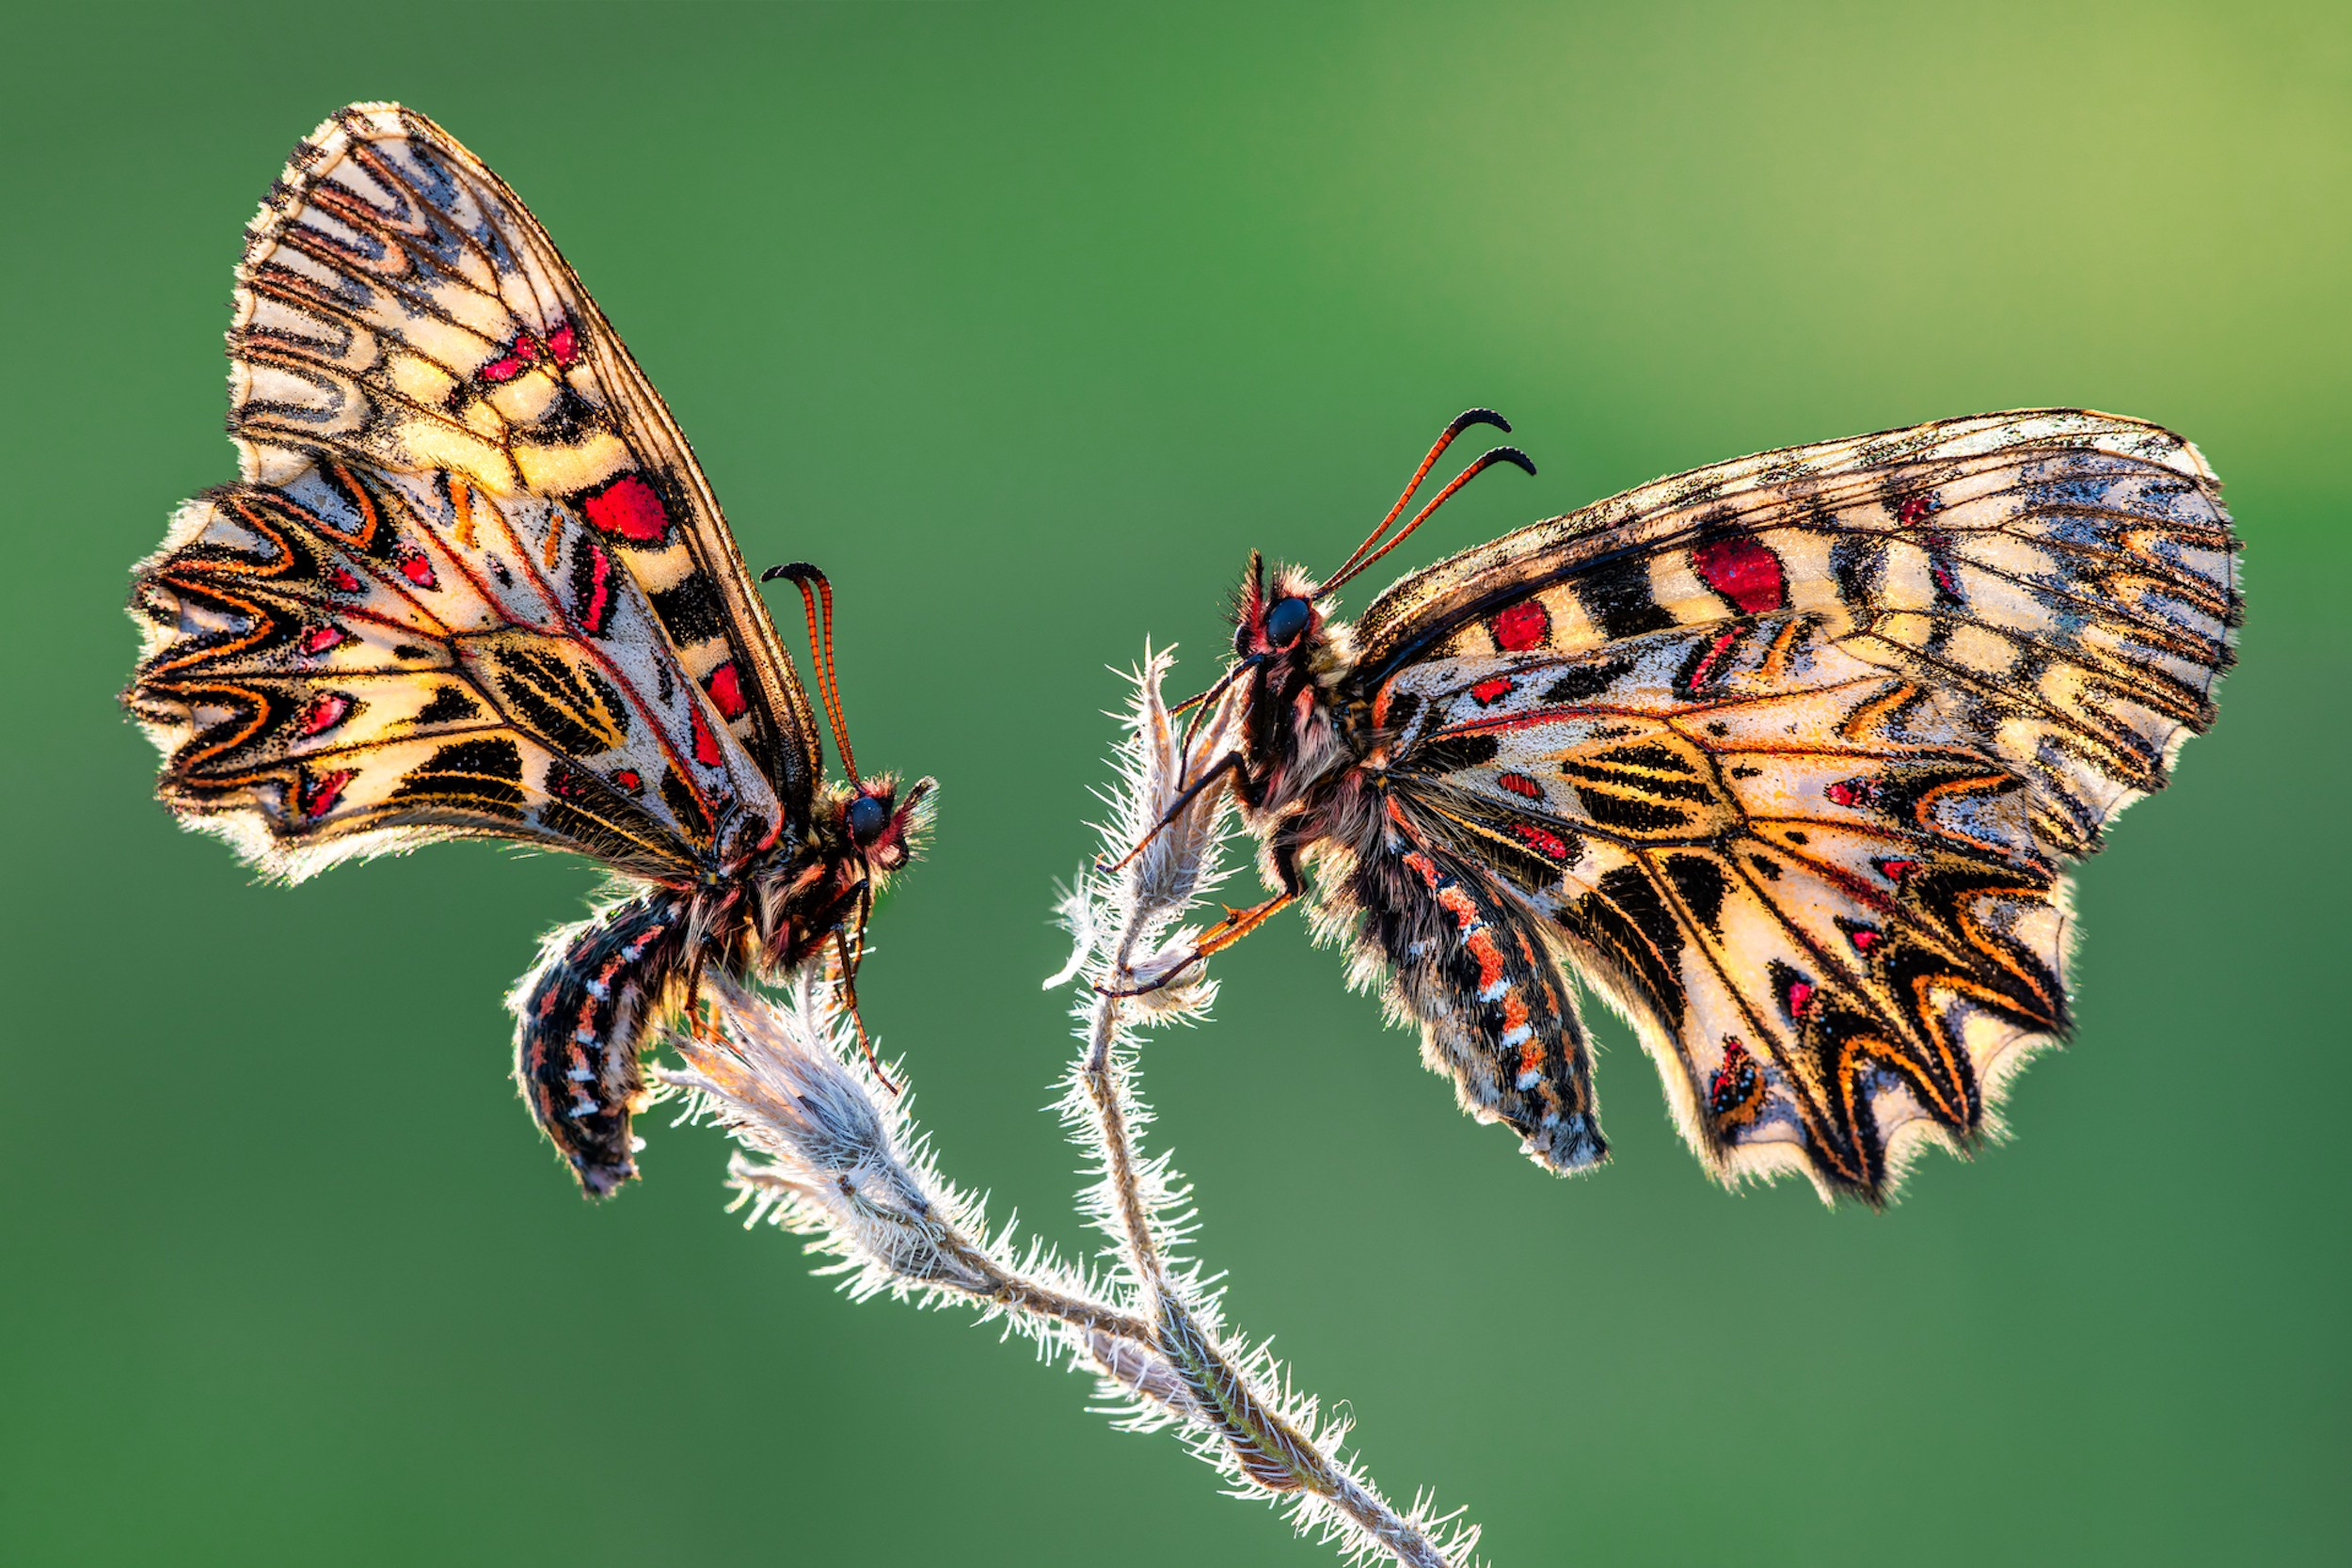 Two breathtaking butterflies are perched opposite each other, glowing with light and offset by a beautiful green